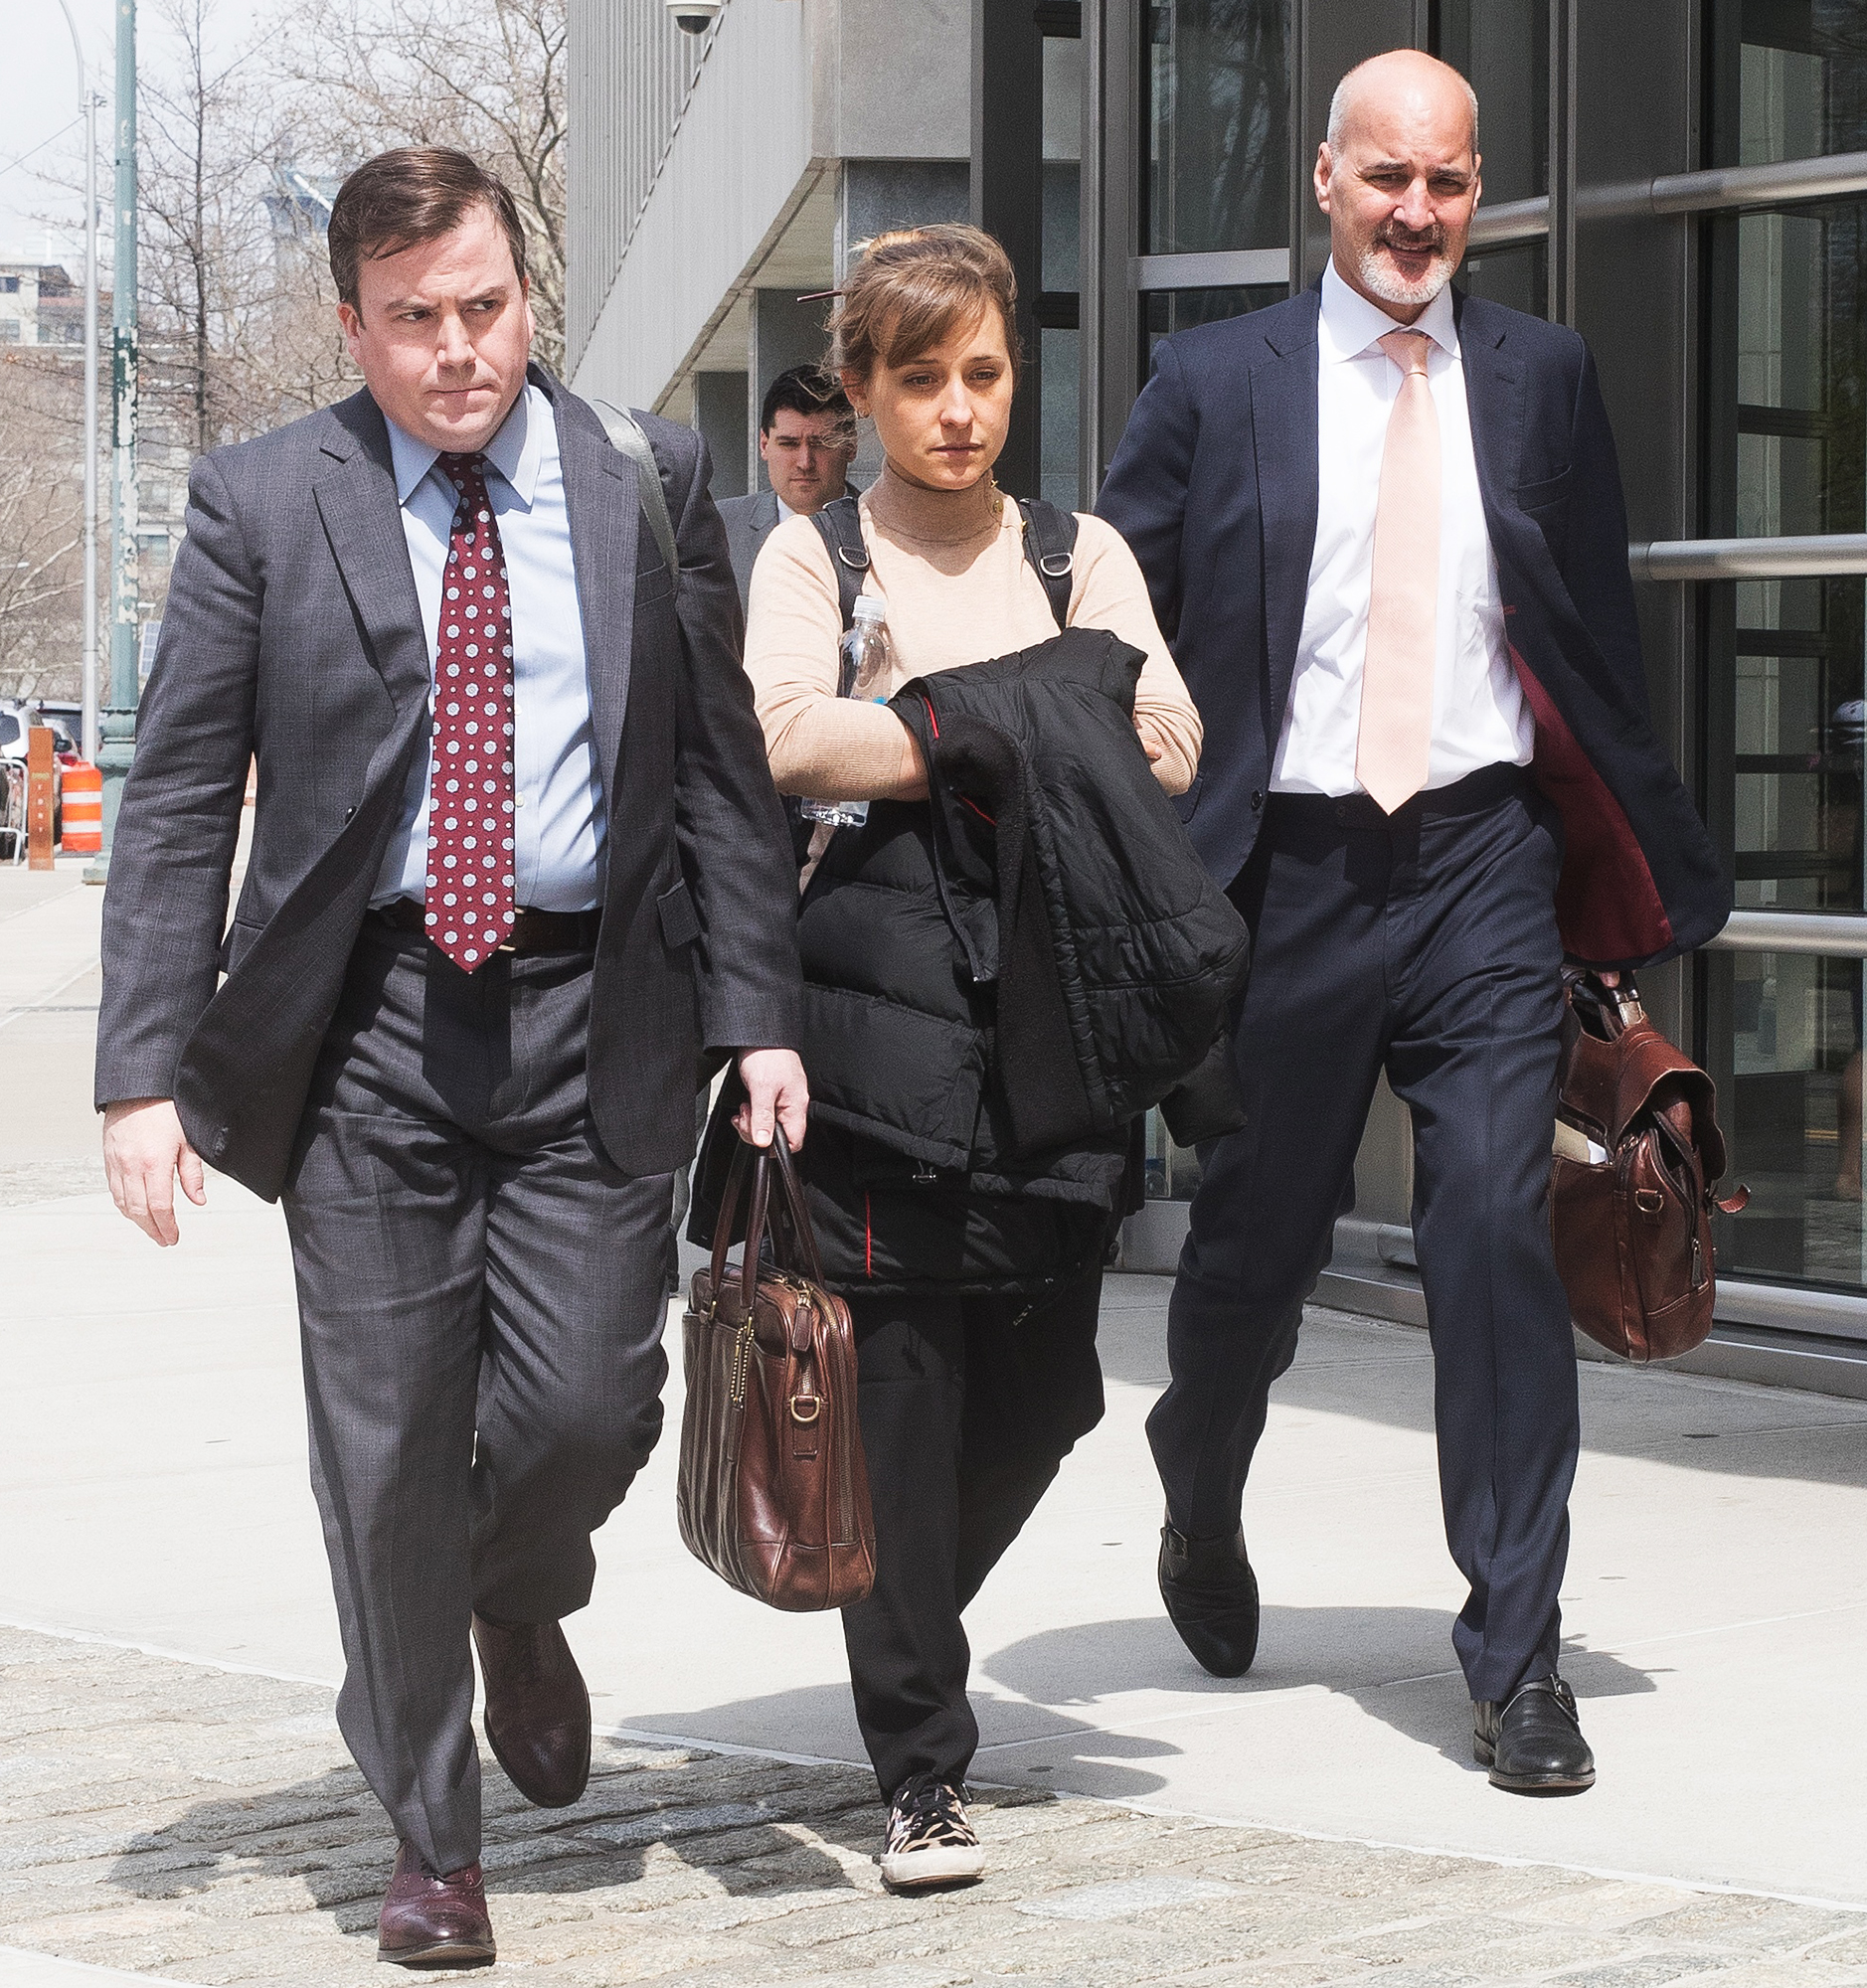 Allison-Mack-court - The Smallville alum changed her plea from not guilty to guilty on charges of racketeering and racketeering conspiracy in the NXIVM sex-trafficking case on April 8, 2019. The Germany native, who was arrested on charges of sex trafficking, sex-trafficking conspiracy and conspiracy to commit forced labor, faces a maximum of up to 40 years in prison.